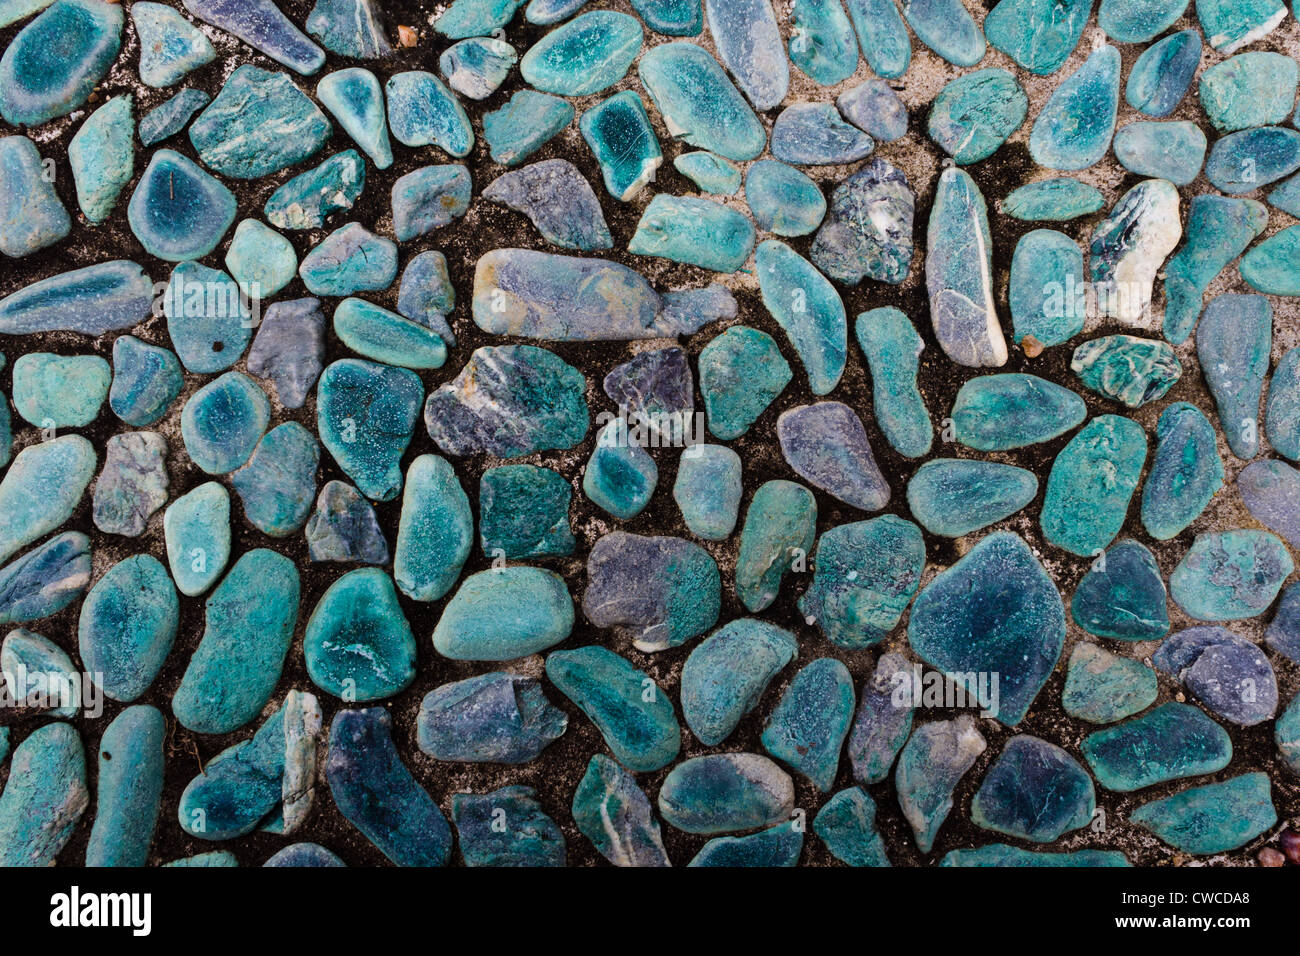 Aqua Floor of the Small Rocks. - Stock Image